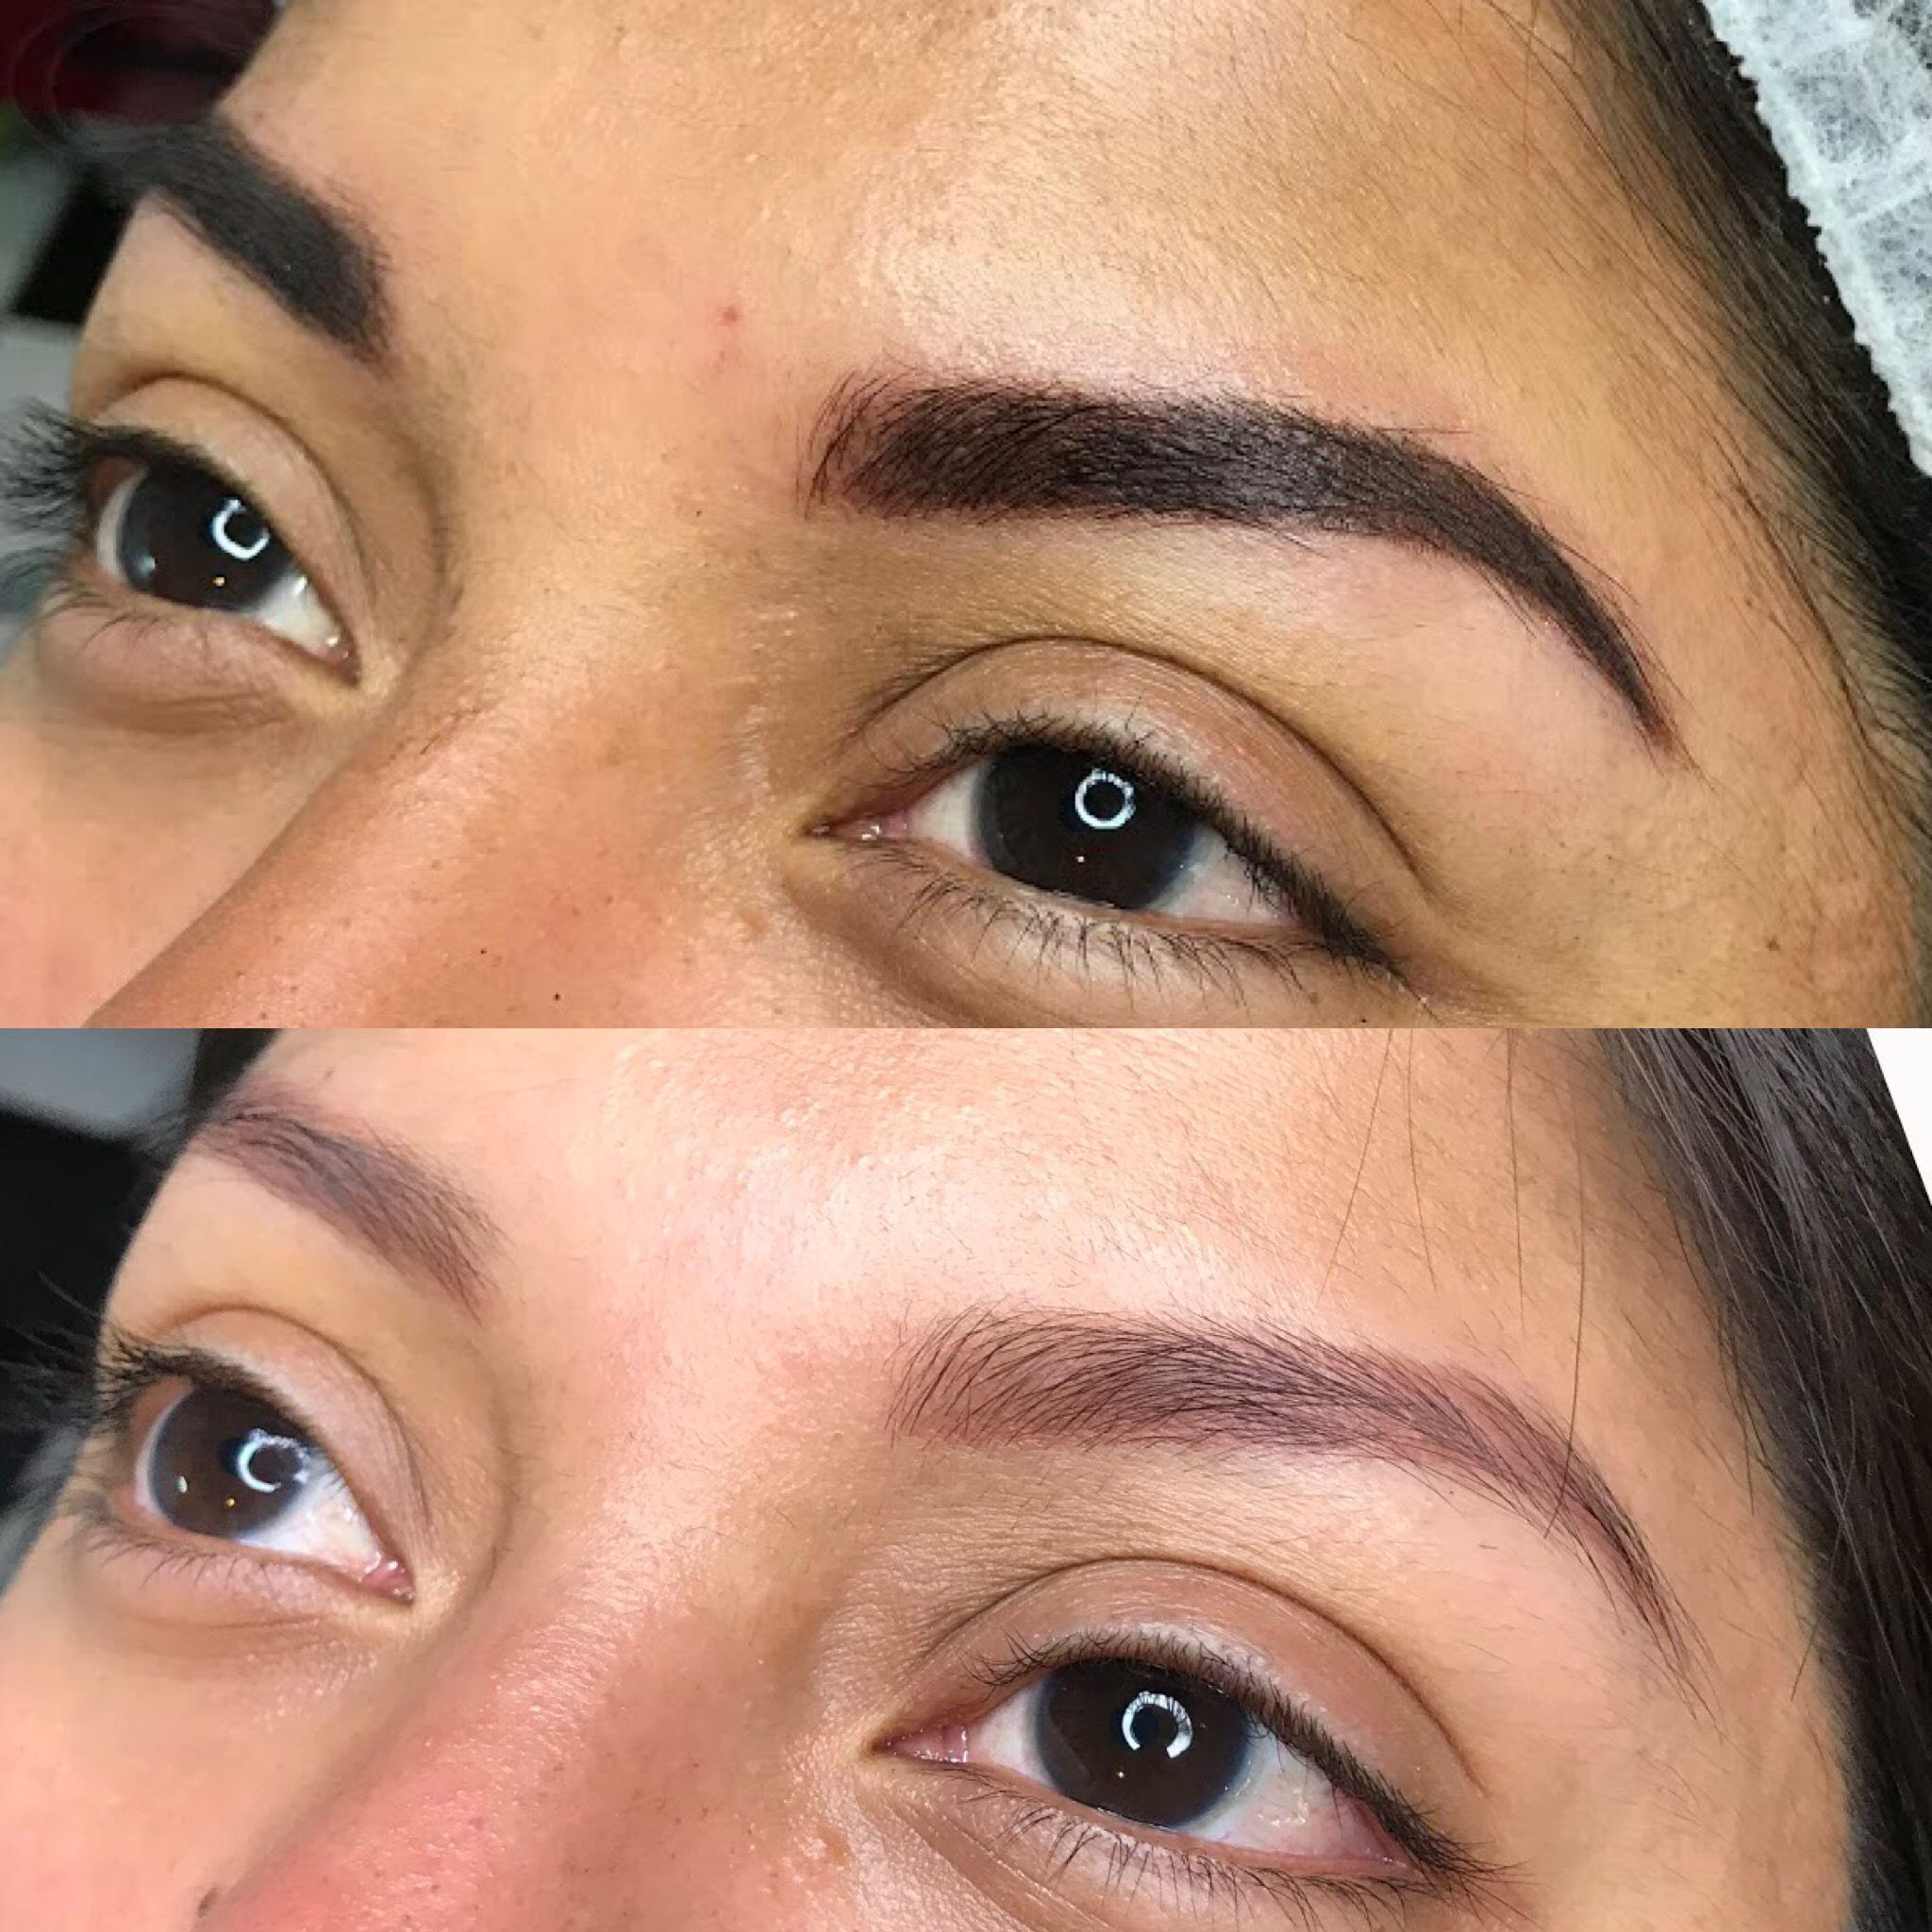 When brows fade to red or blue, they need to be 'corrected